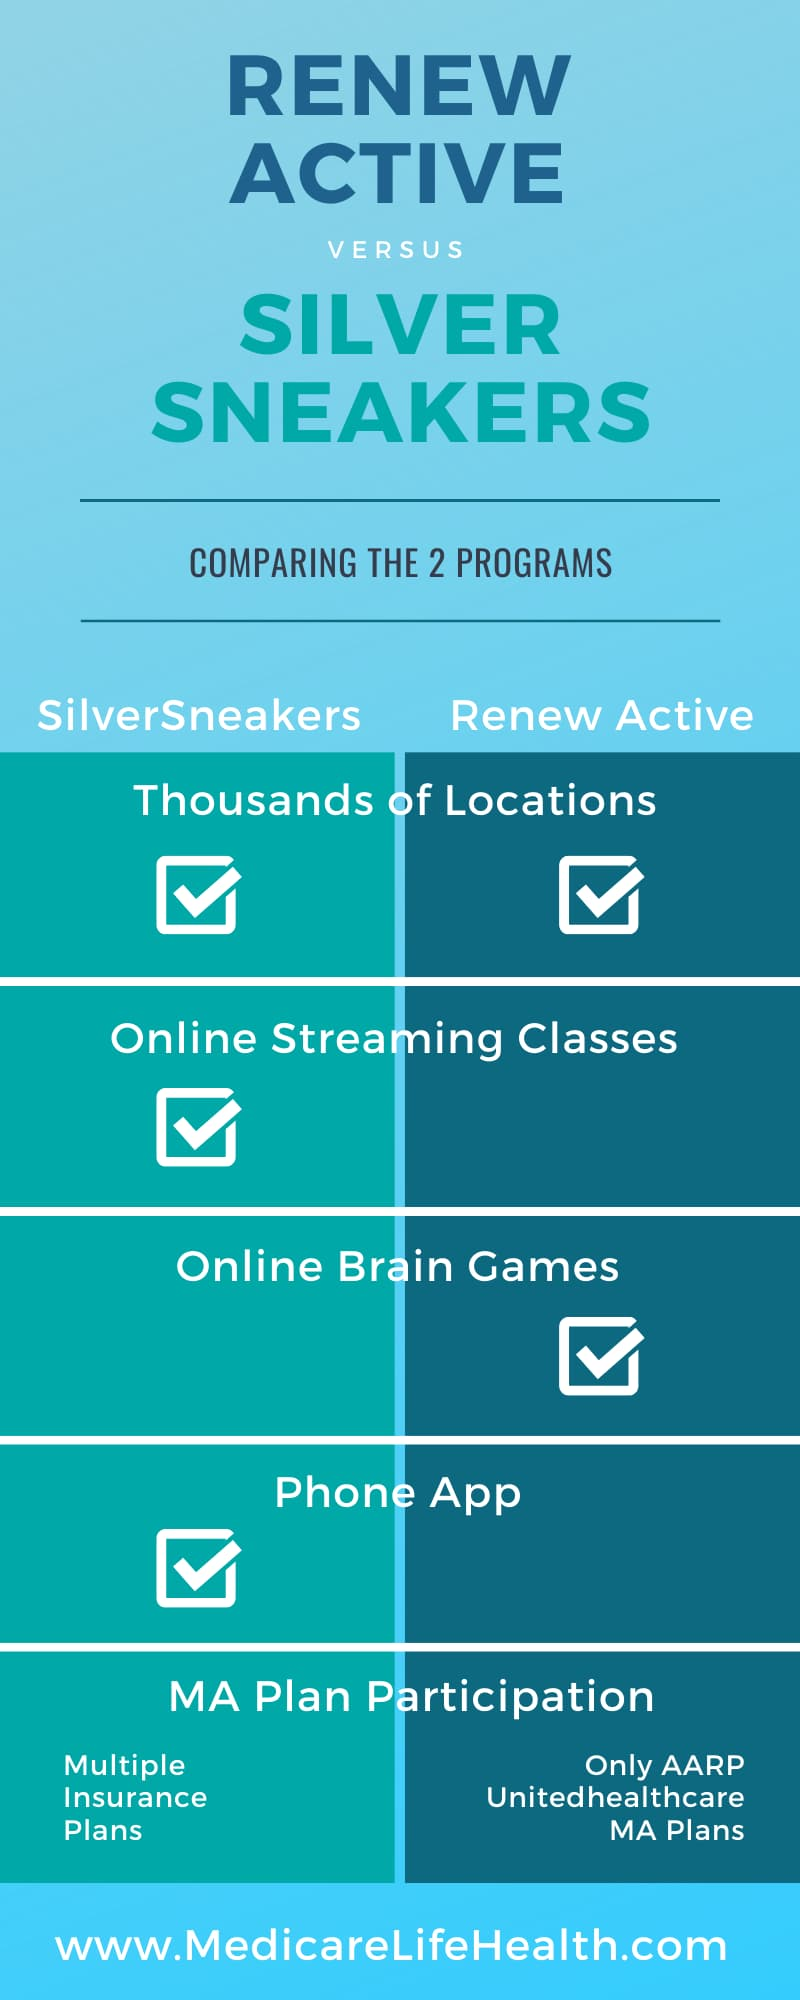 renew active vs silver sneakers infographic comparison chart